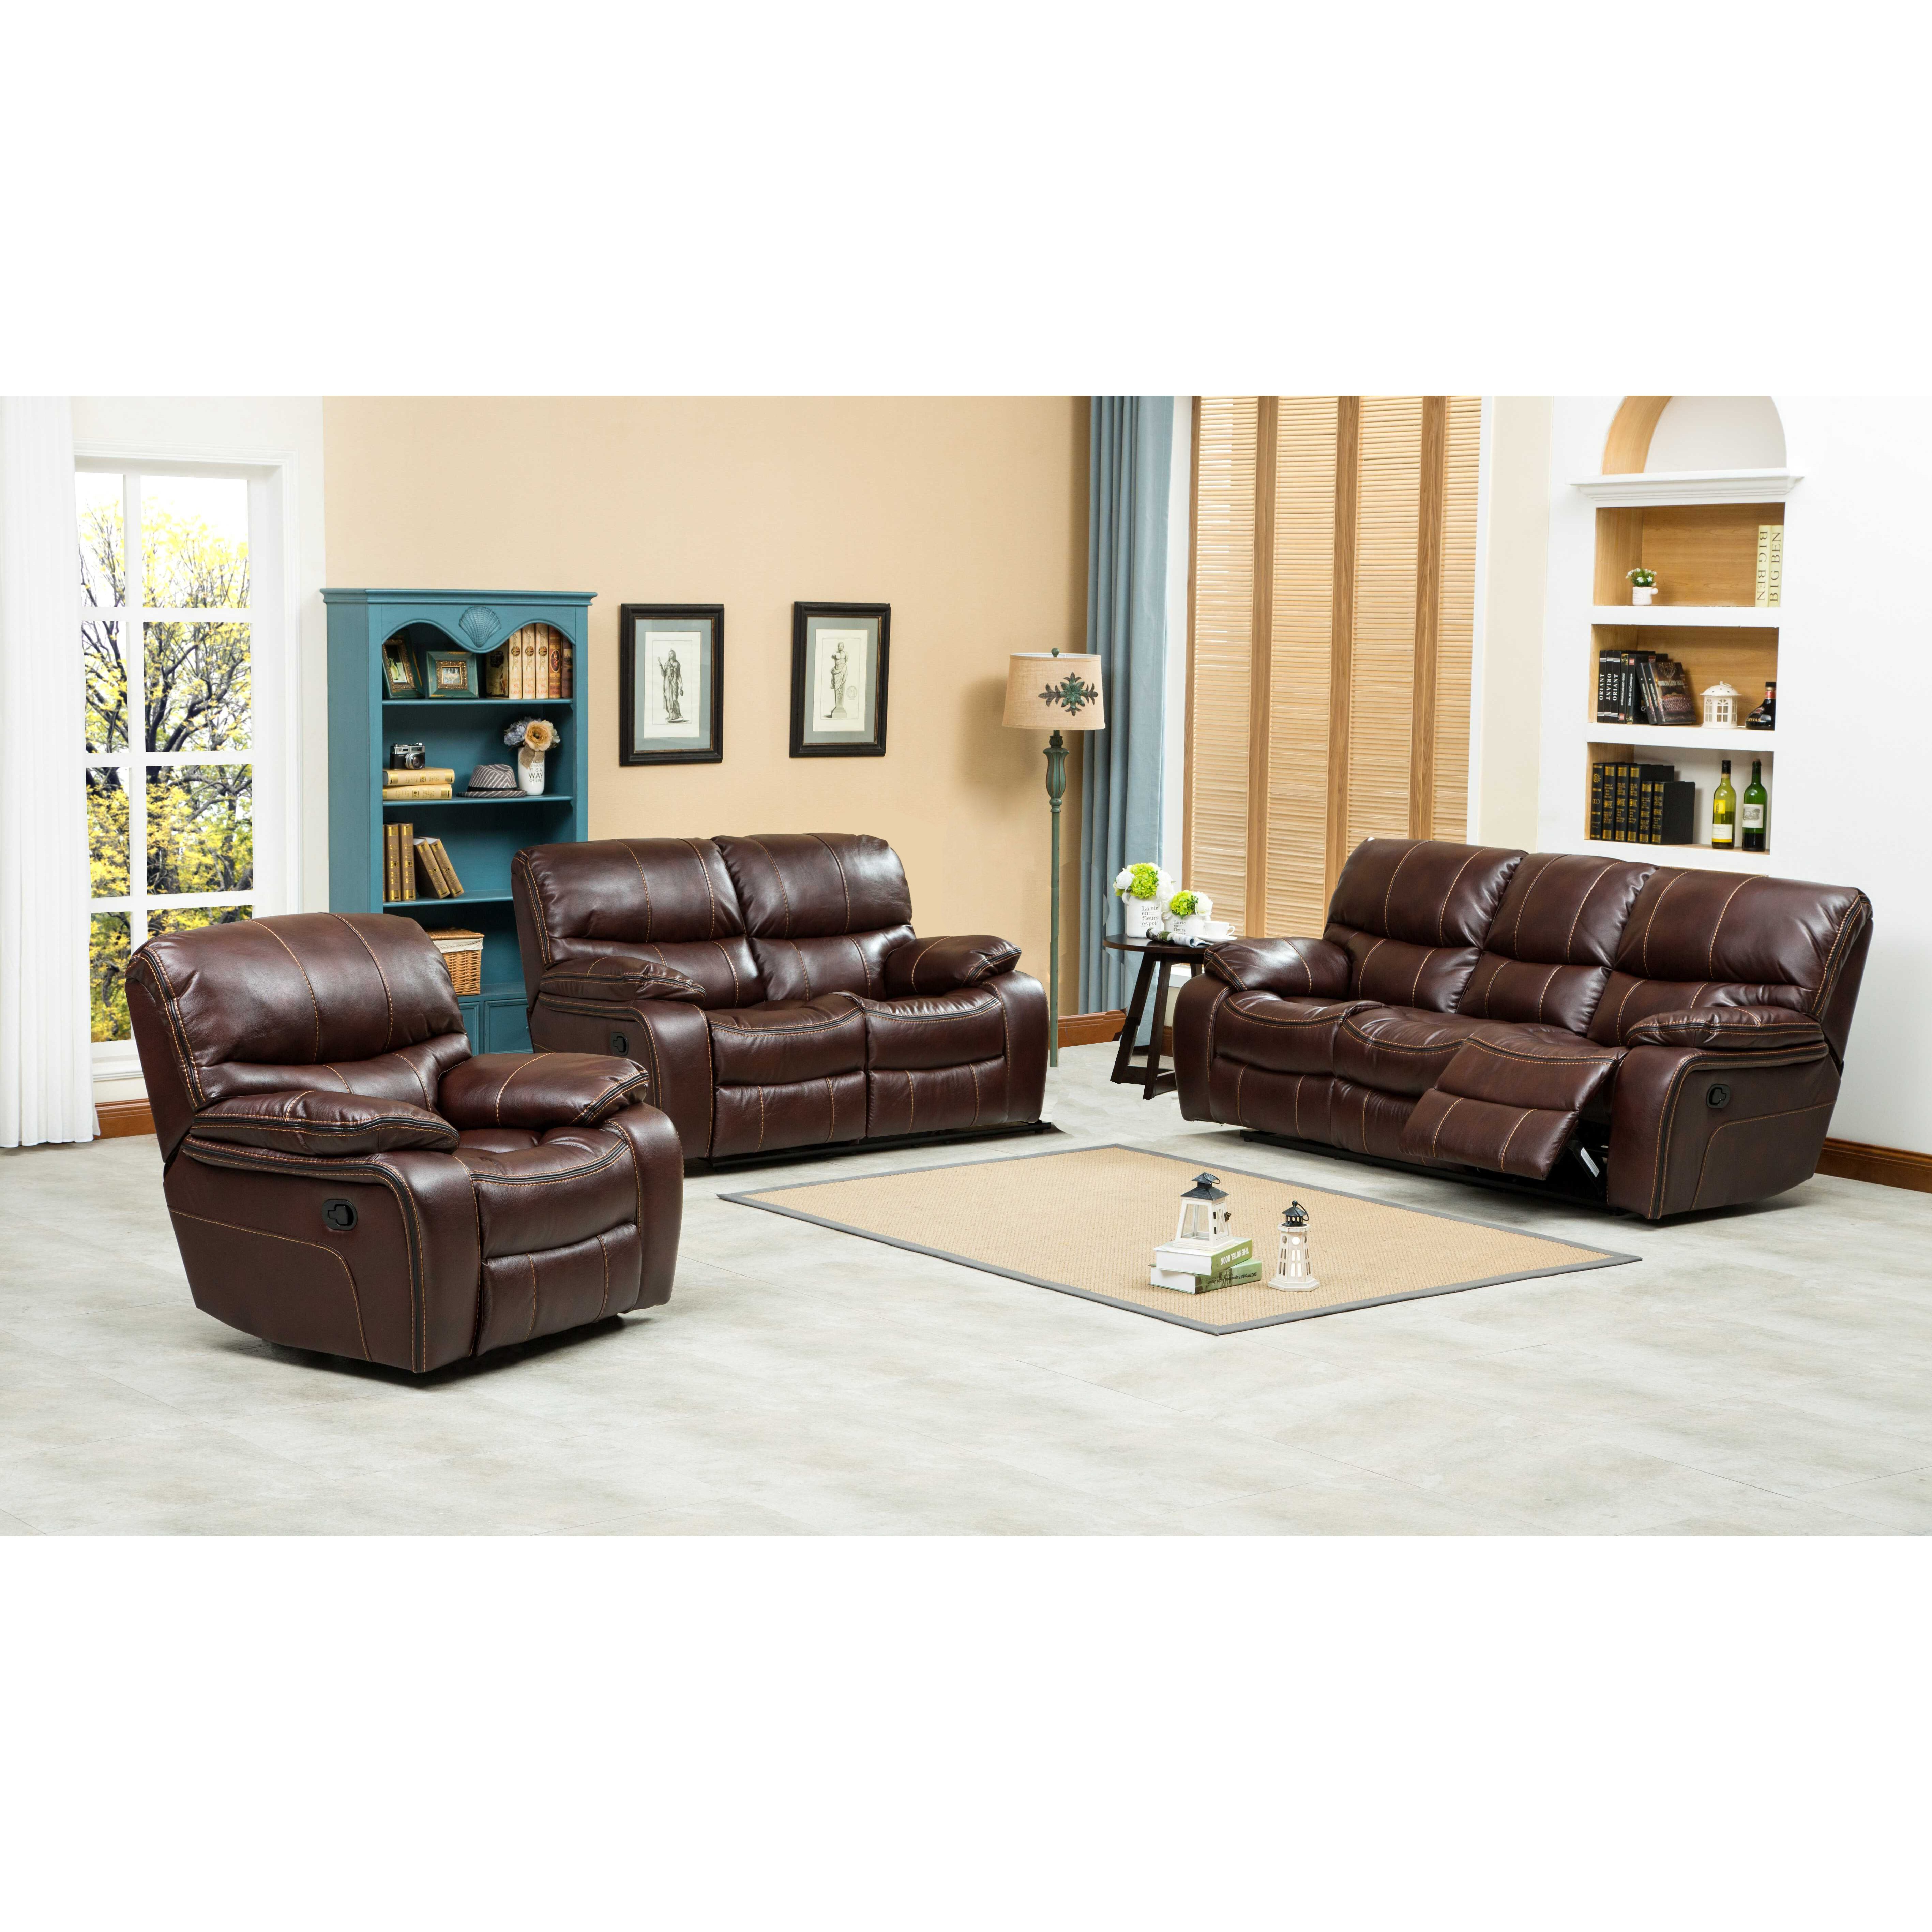 Roundhill furniture ewa 3 piece reclining leather living for Leather living room sets